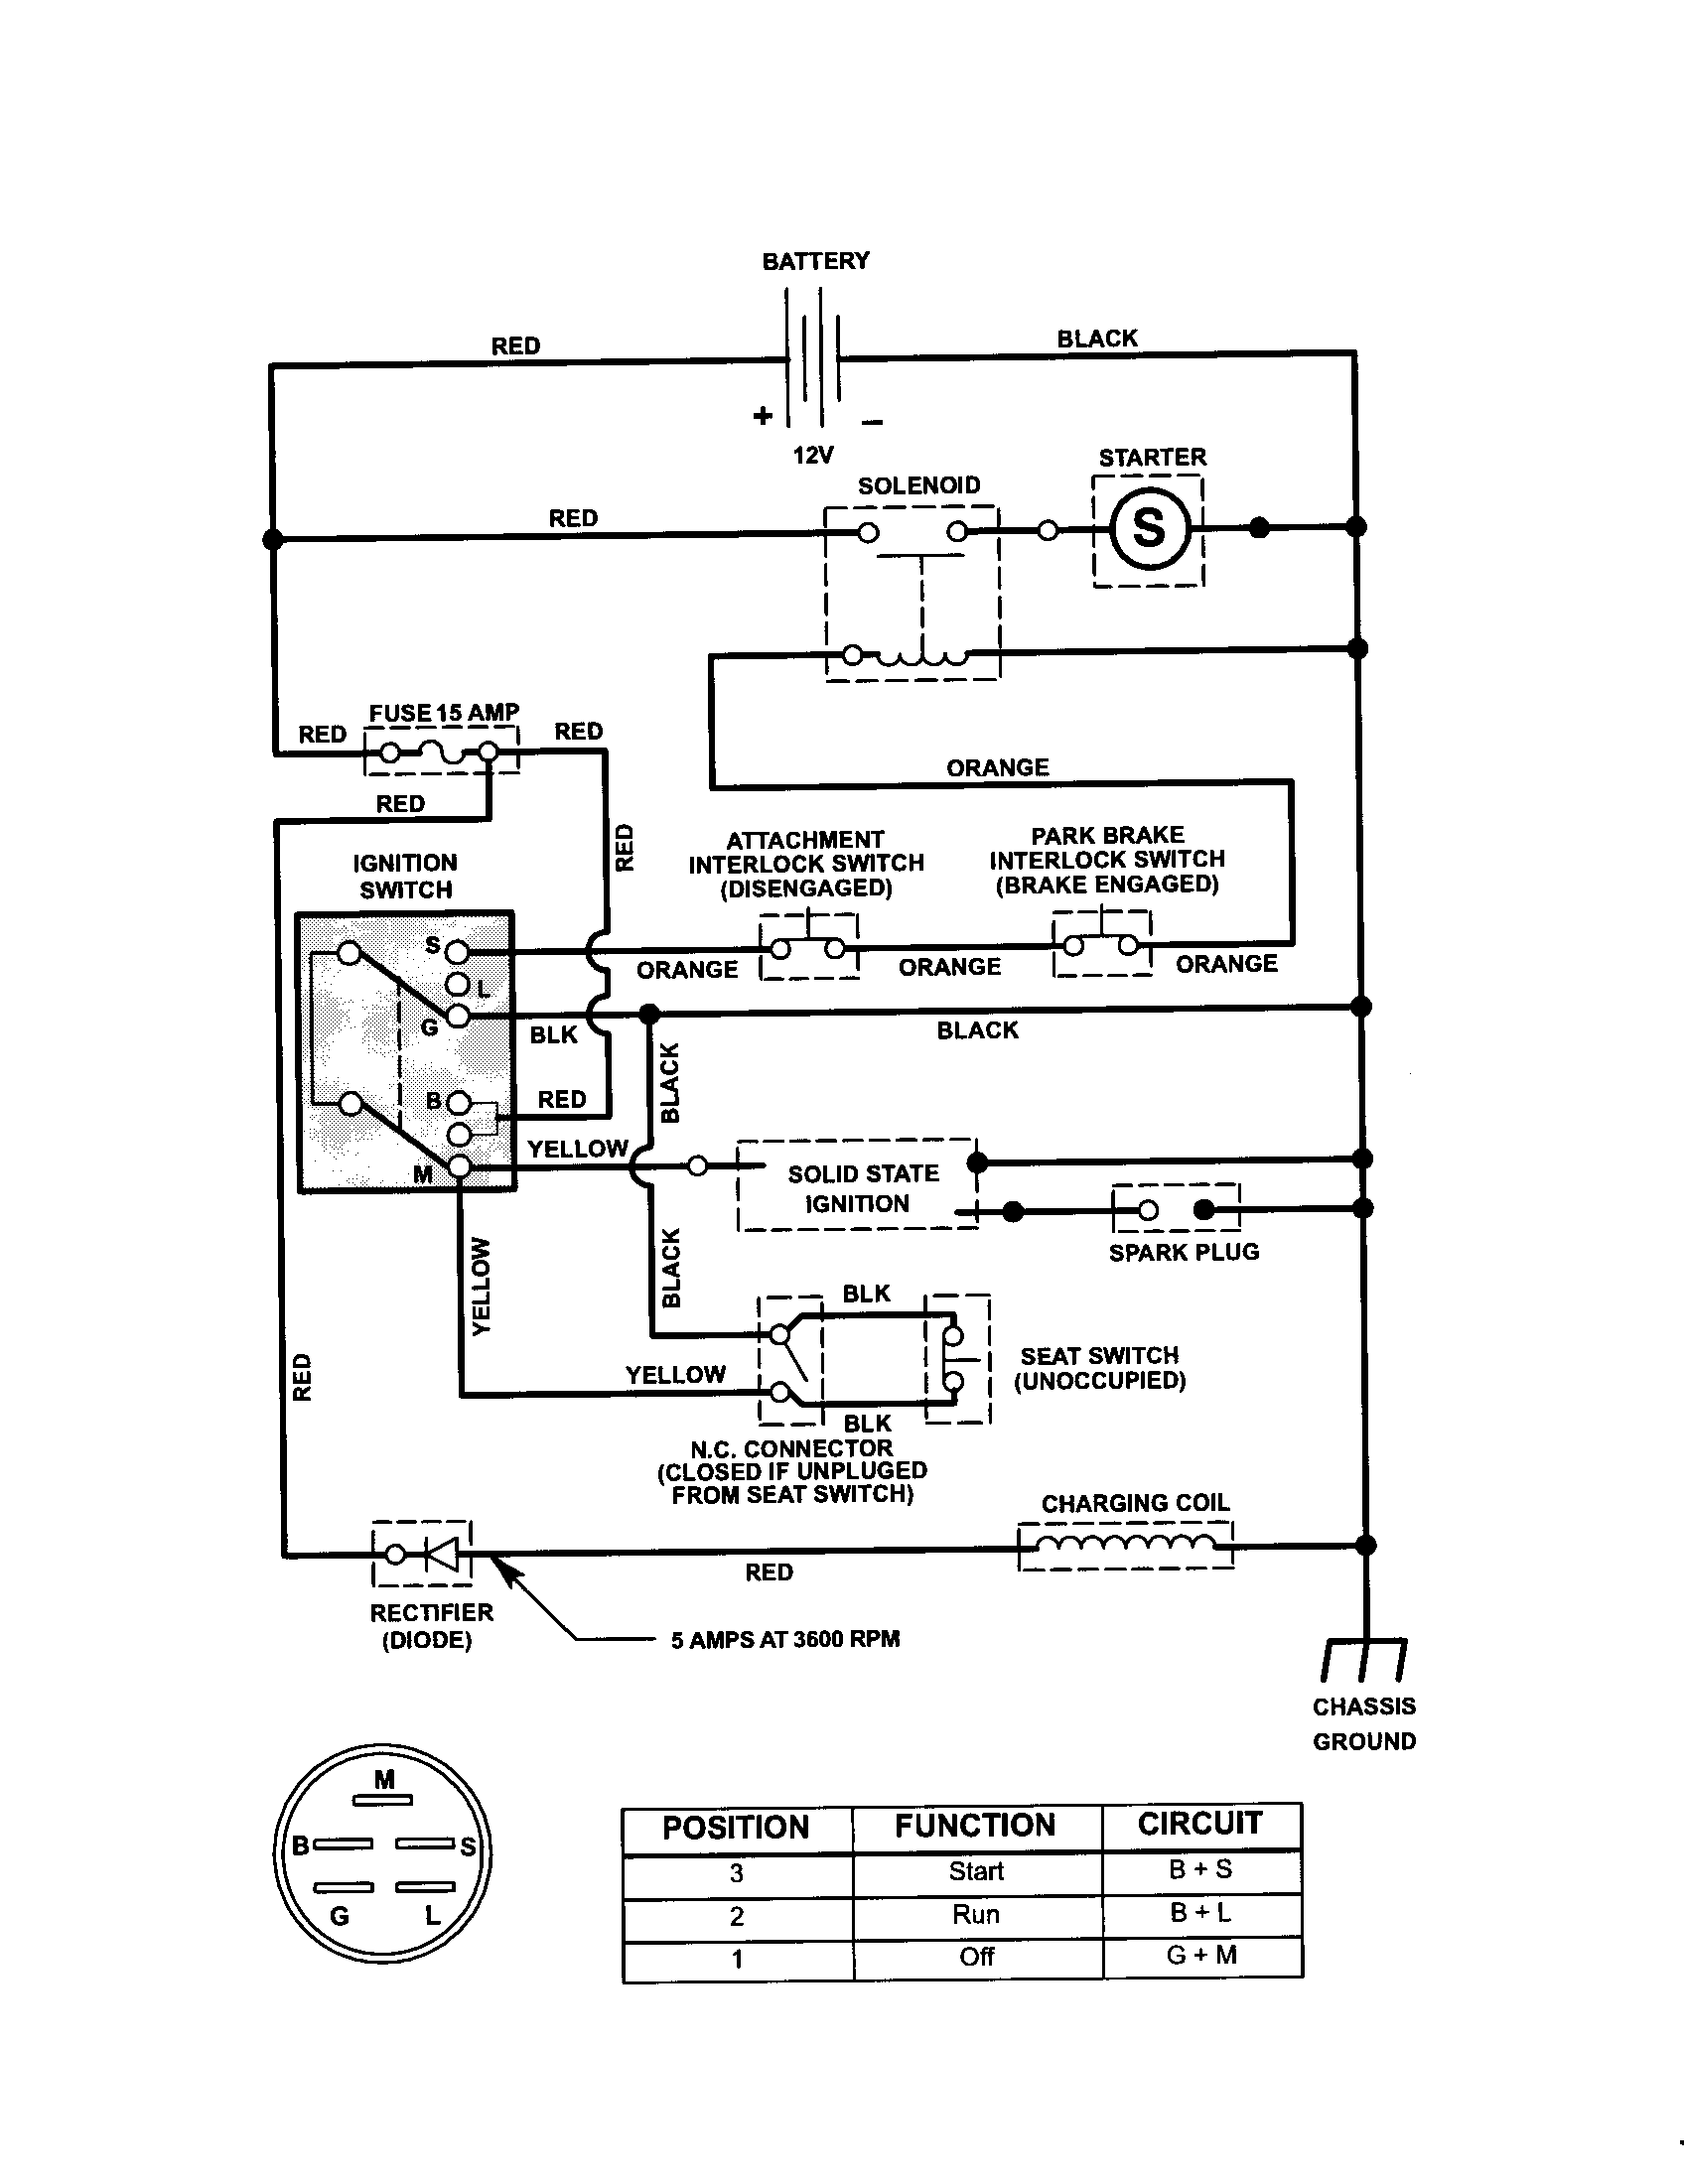 medium resolution of craftsman riding mower electrical diagram pictures of craftsman sears craftsman garage door opener wiring diagram craftsman